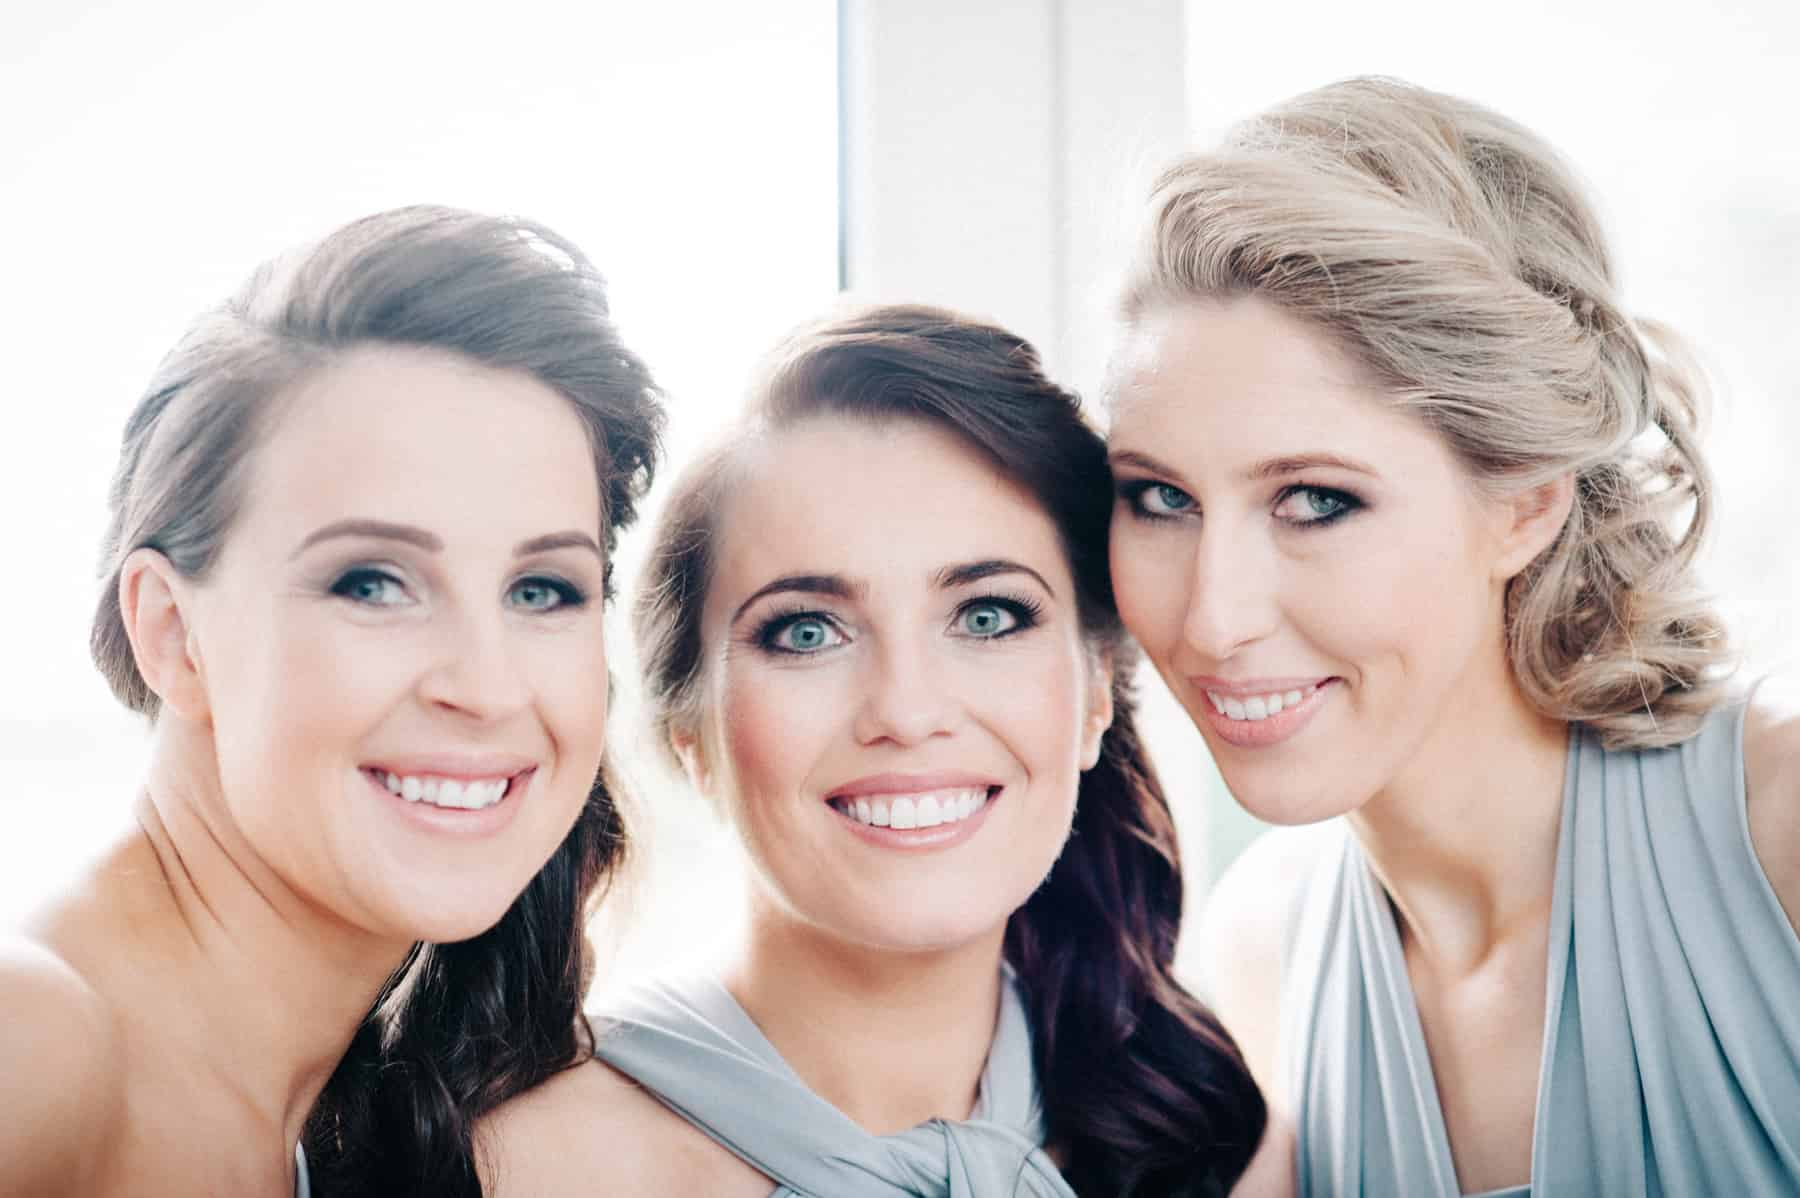 wedding photography bridesmaids (1 of 1)